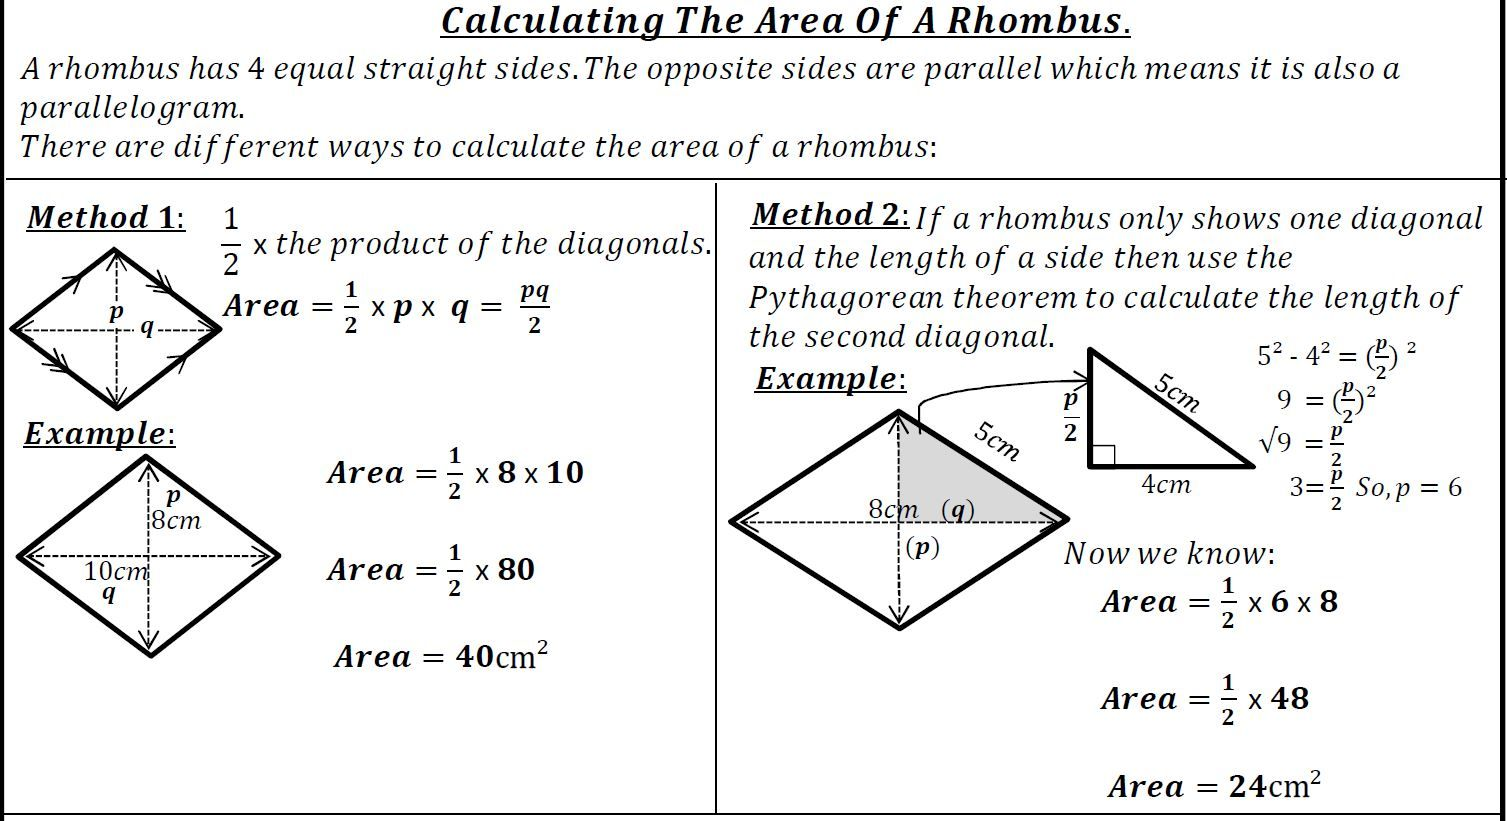 Free Area Of A Rhombus Worksheet Using The Pythagorean Theorem Student Self Assessment Perimeter Worksheets Pythagorean Theorem